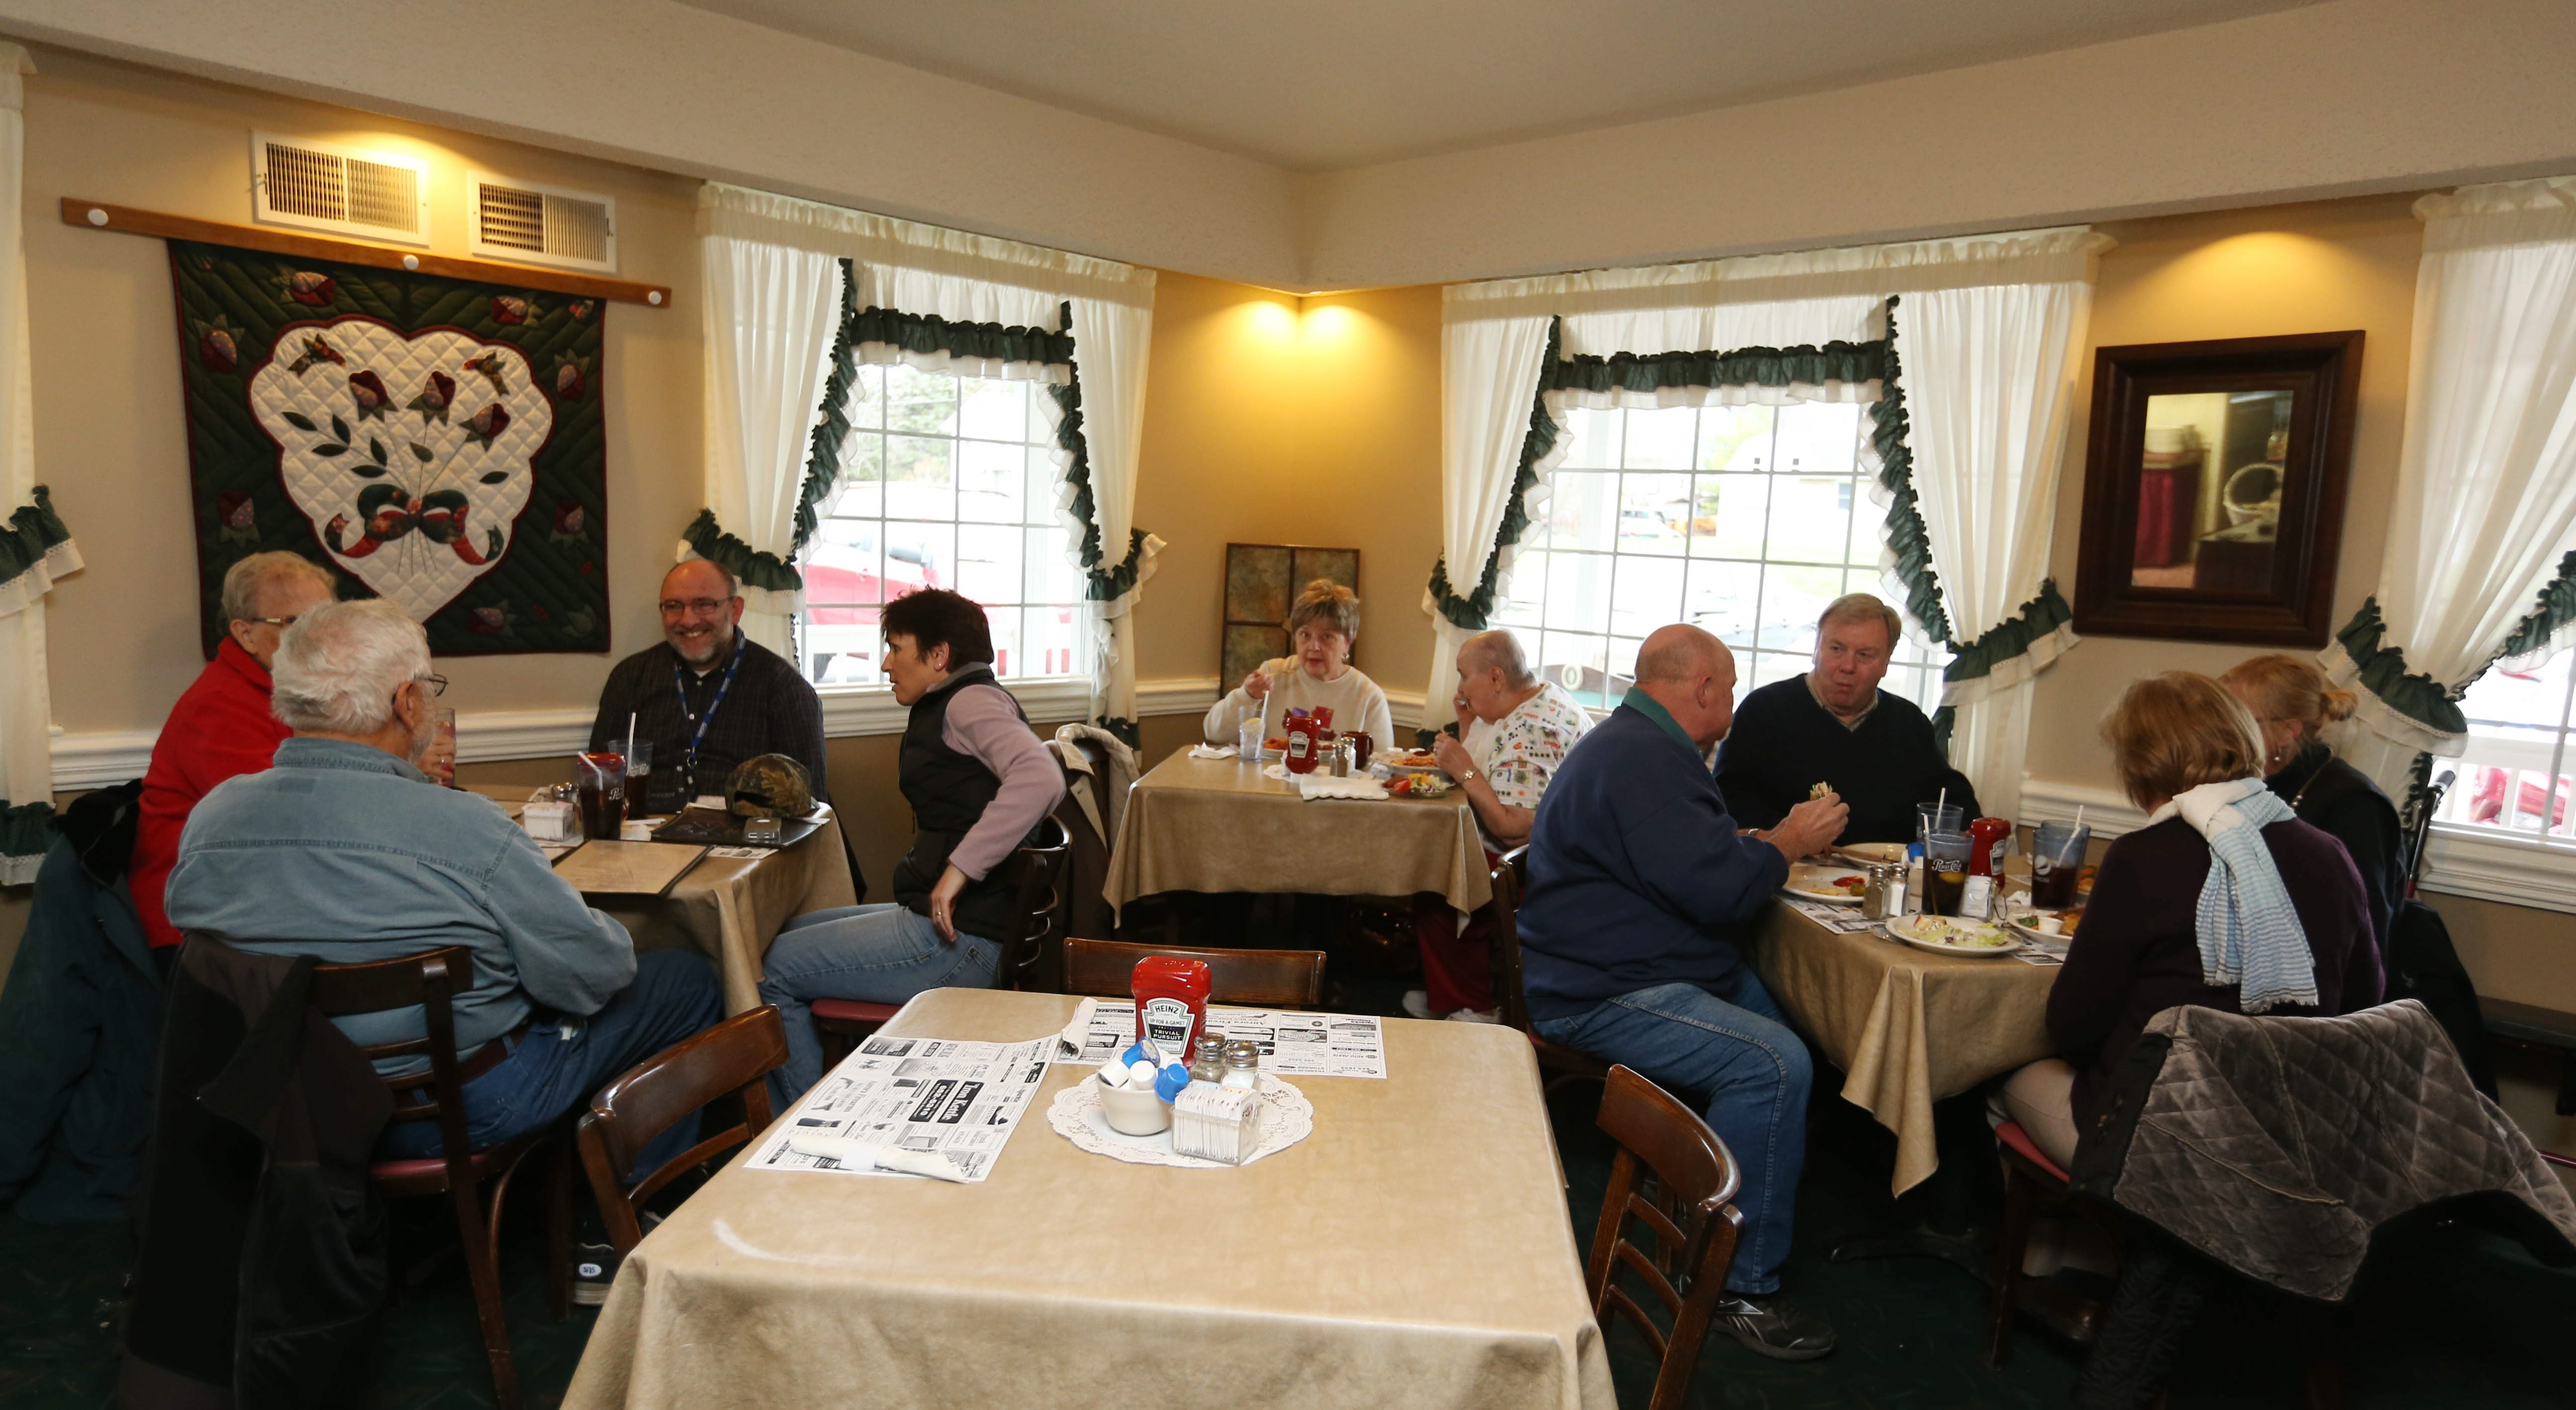 The Iron Kettle, which has been around since 1947, is heavy on comfort food. The East Aurora establishment also serves breakfast all day.